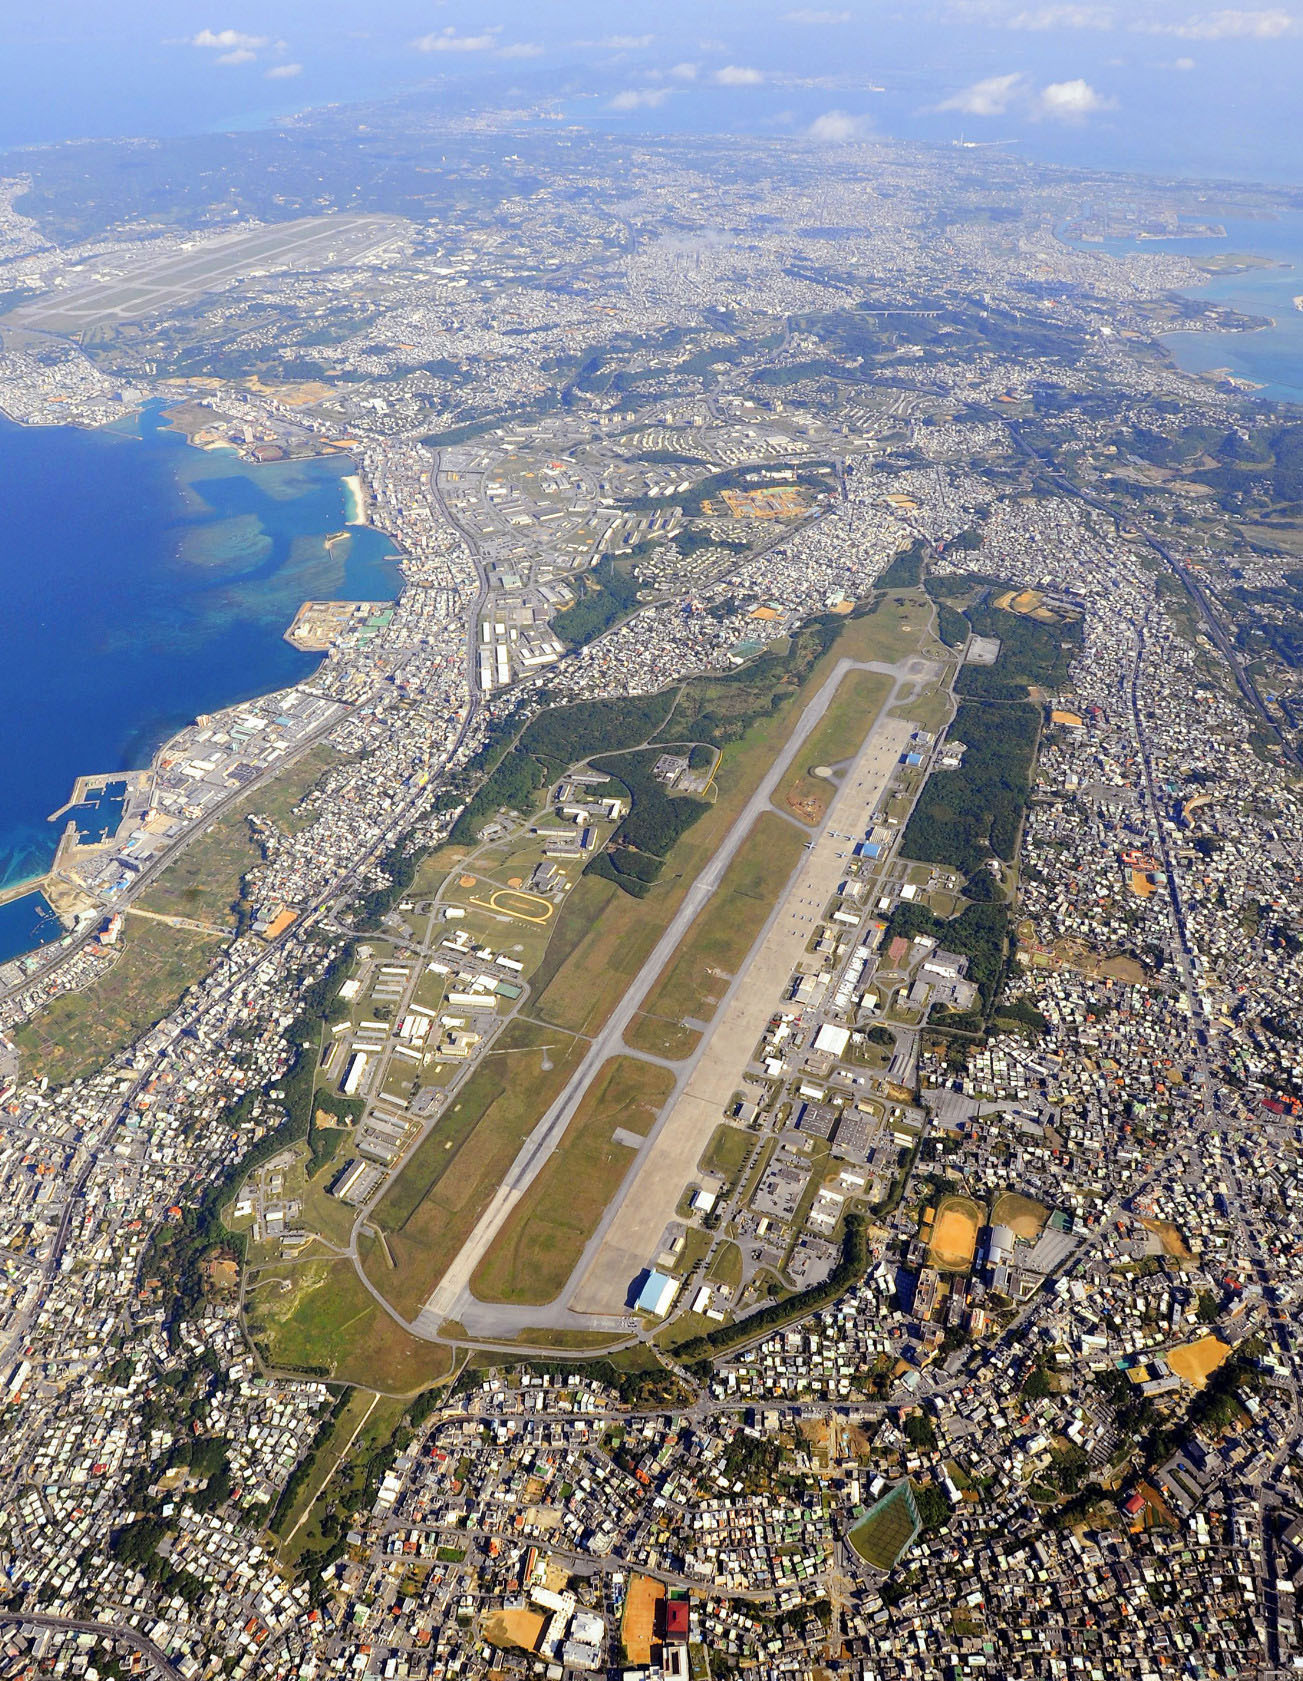 Anniversary of Okinawa's reversion highlights opposing press views